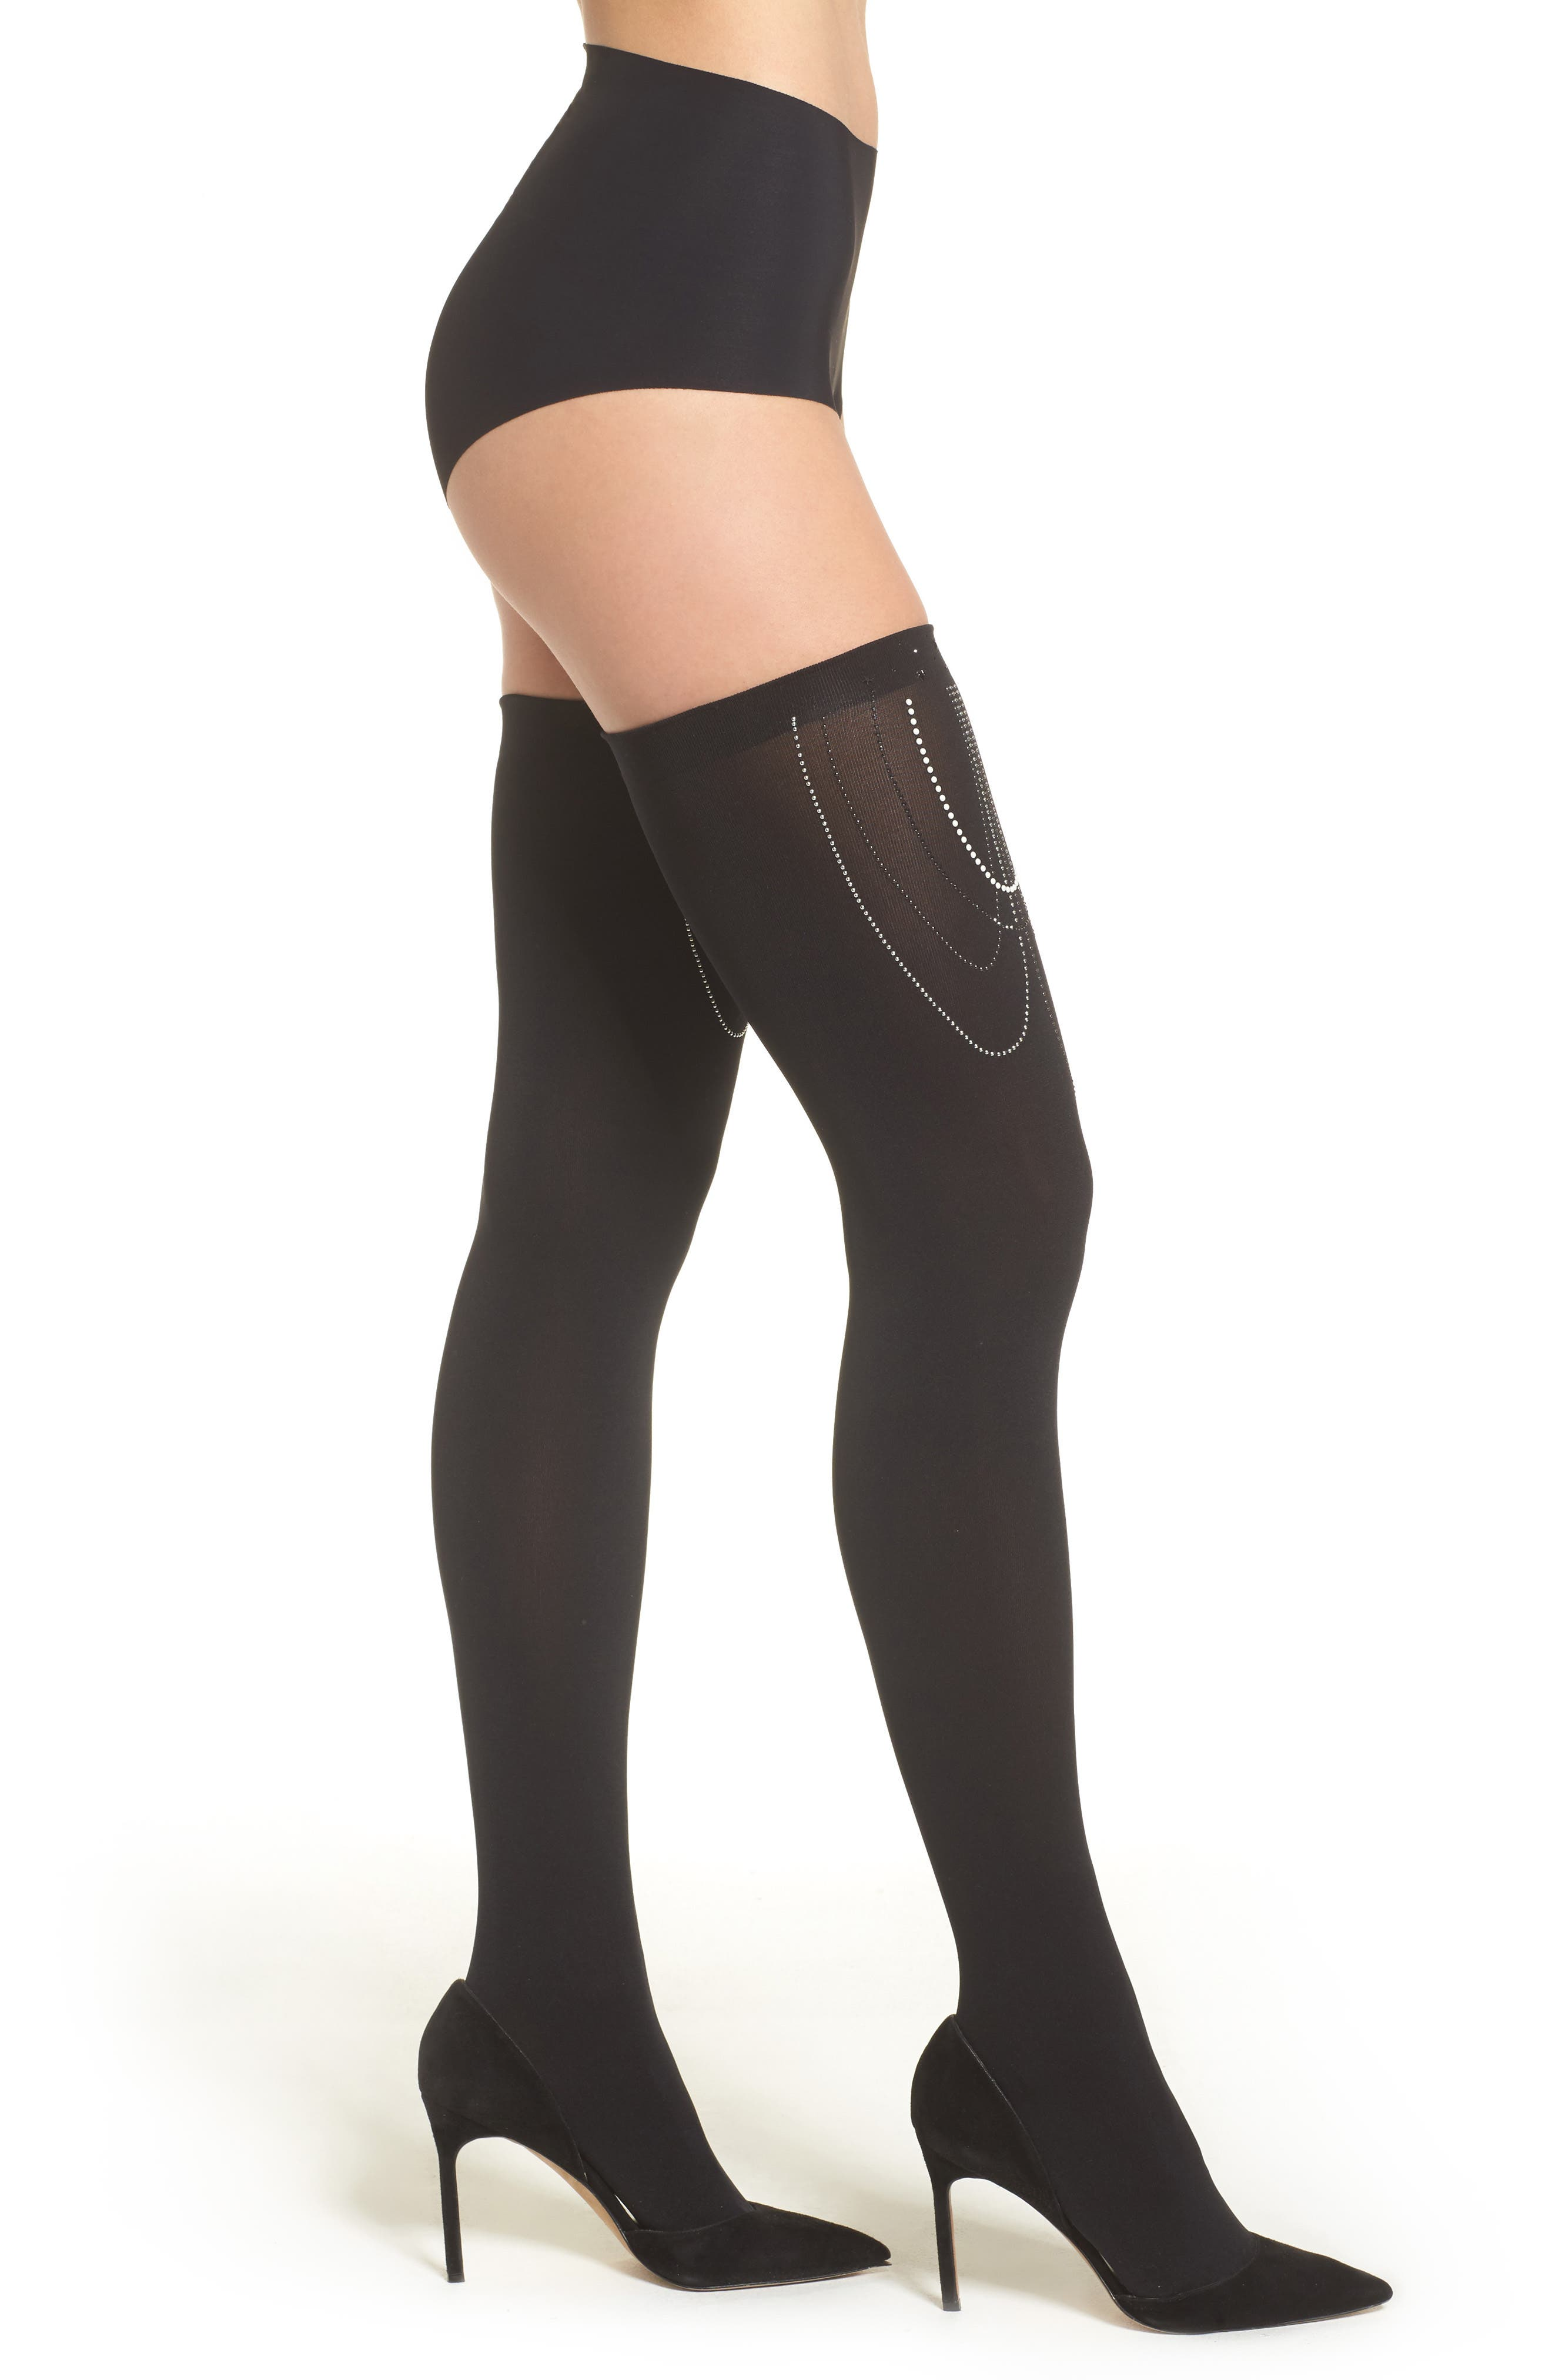 Alternate Image 1 Selected - Wolford Embellished Stay-Put Stockings